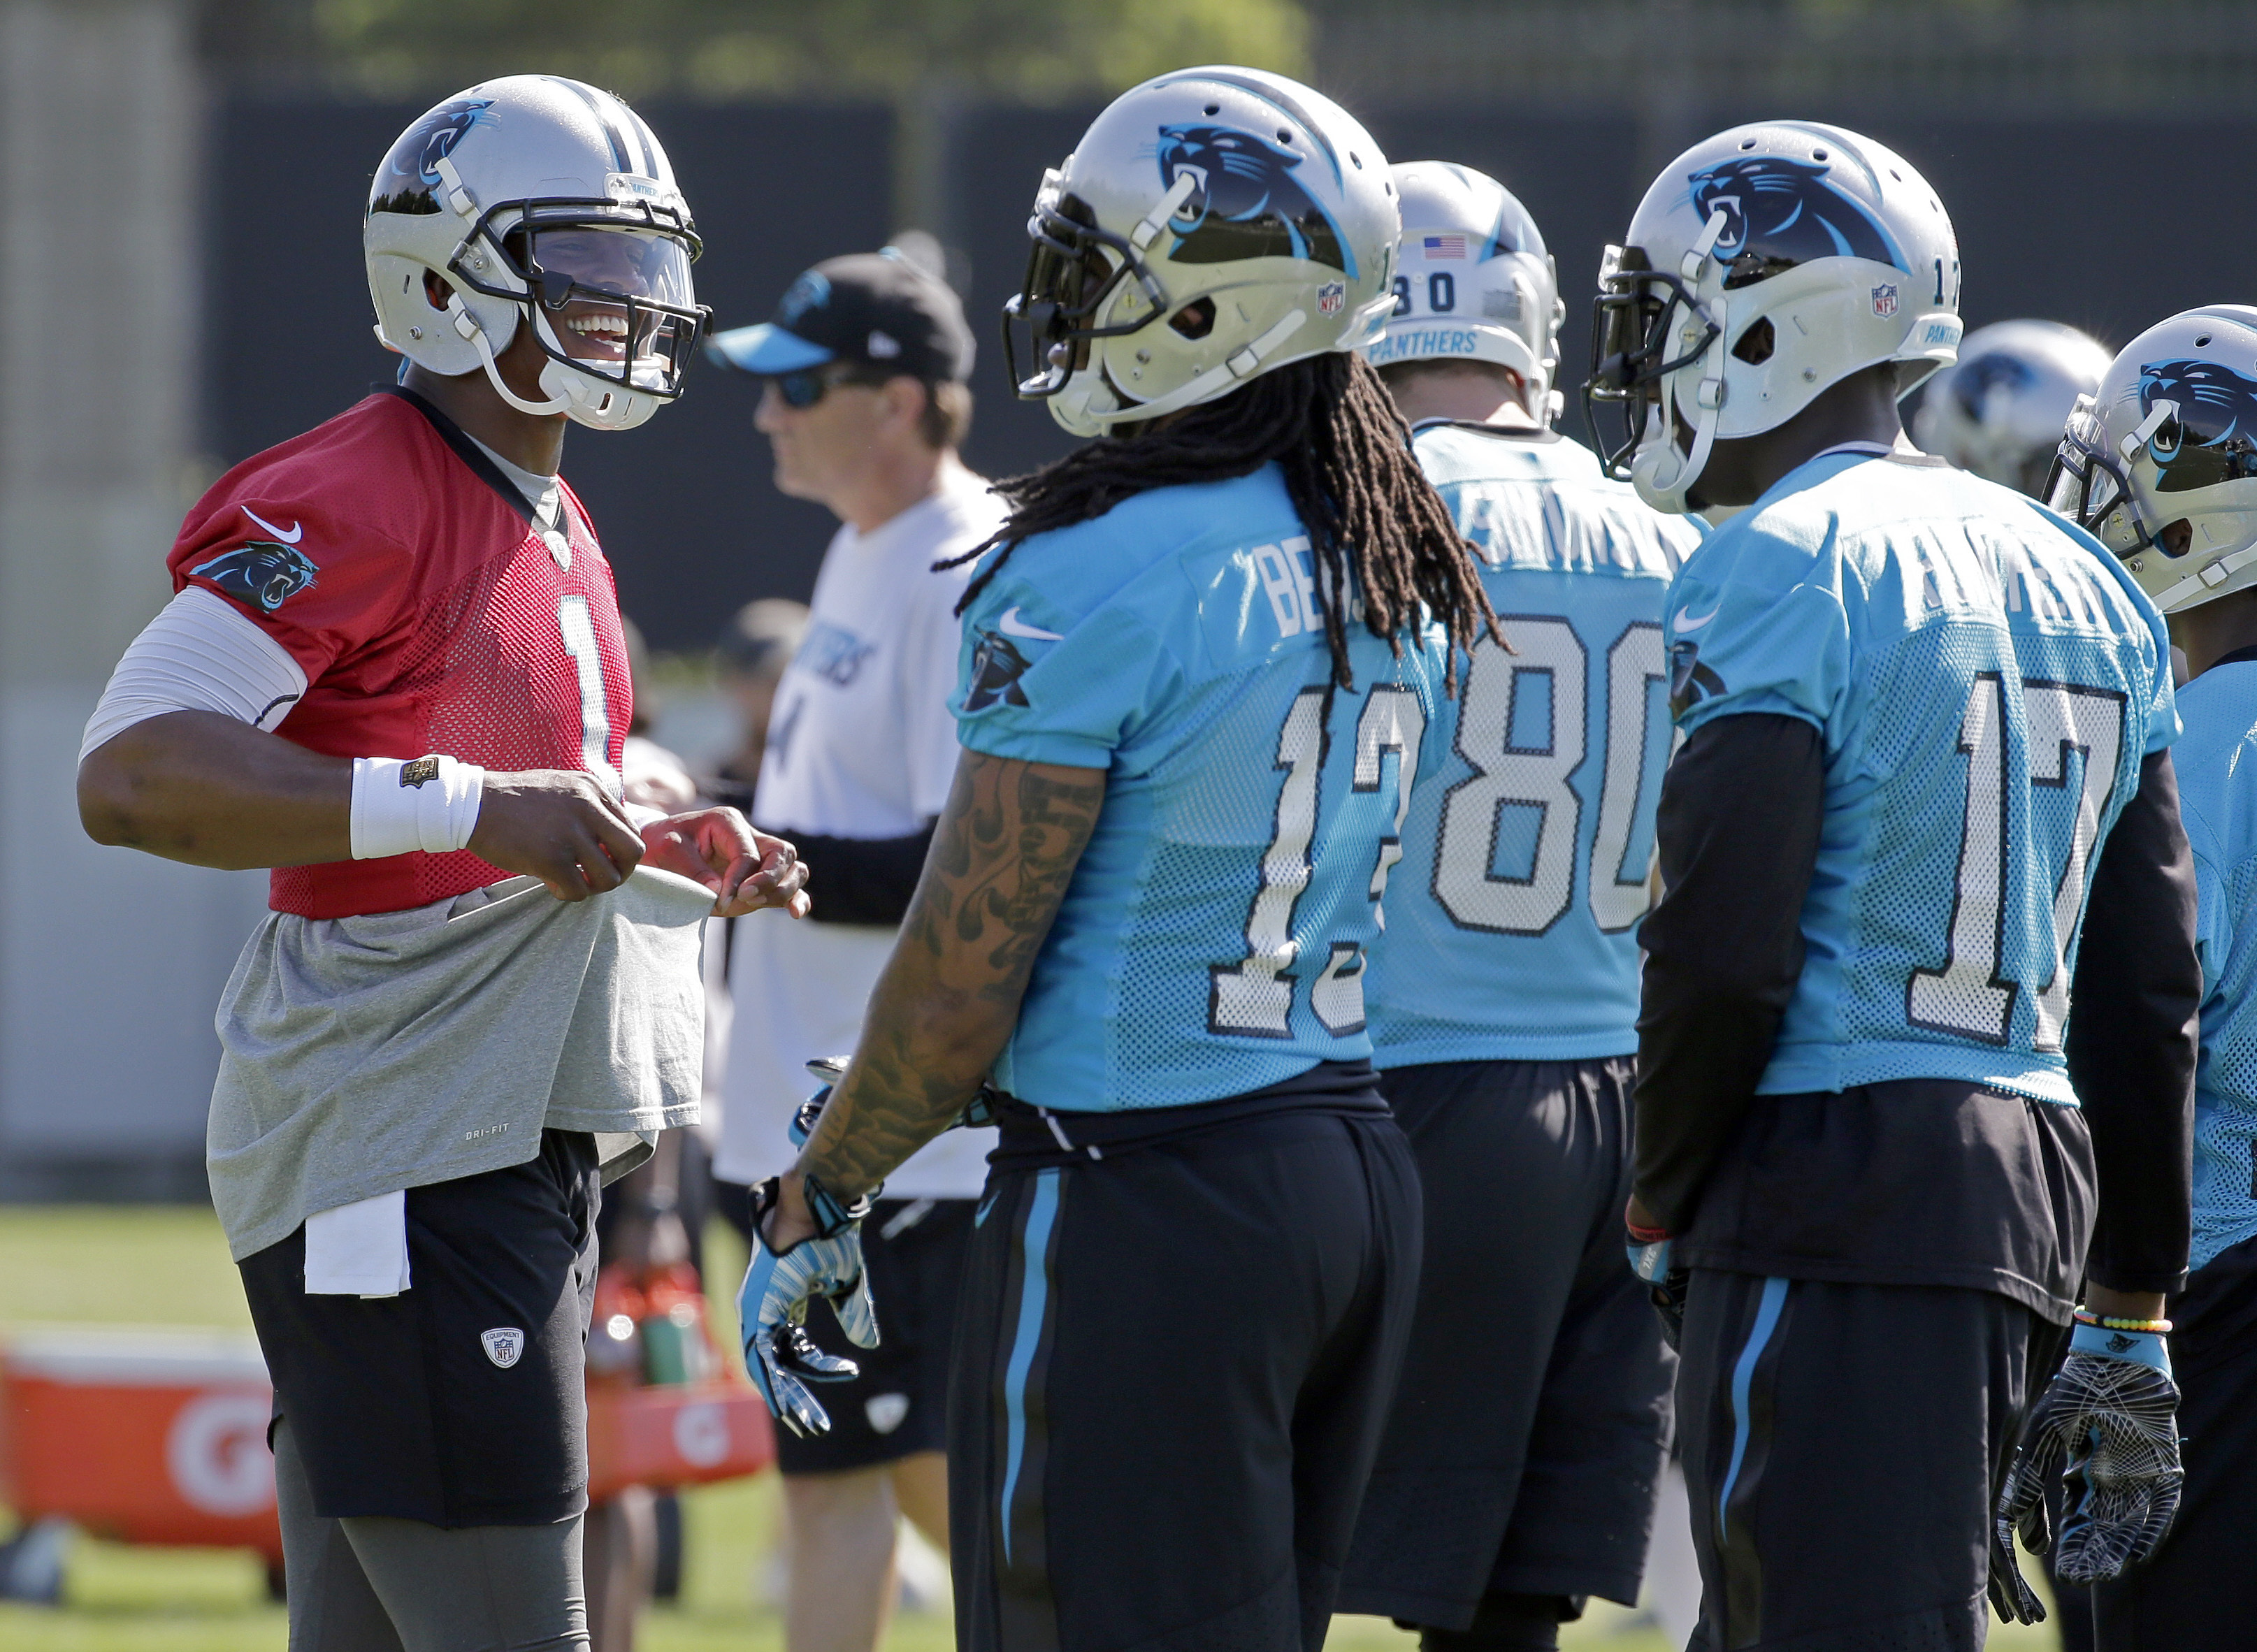 Carolina Panthers' Cam Newton, left, jokes with receivers Kelvin Benjamin, center, and Devin Funchess, right, during NFL football practice in Charlotte, N.C., Tuesday, May 31, 2016. (AP Photo/Chuck Burton)